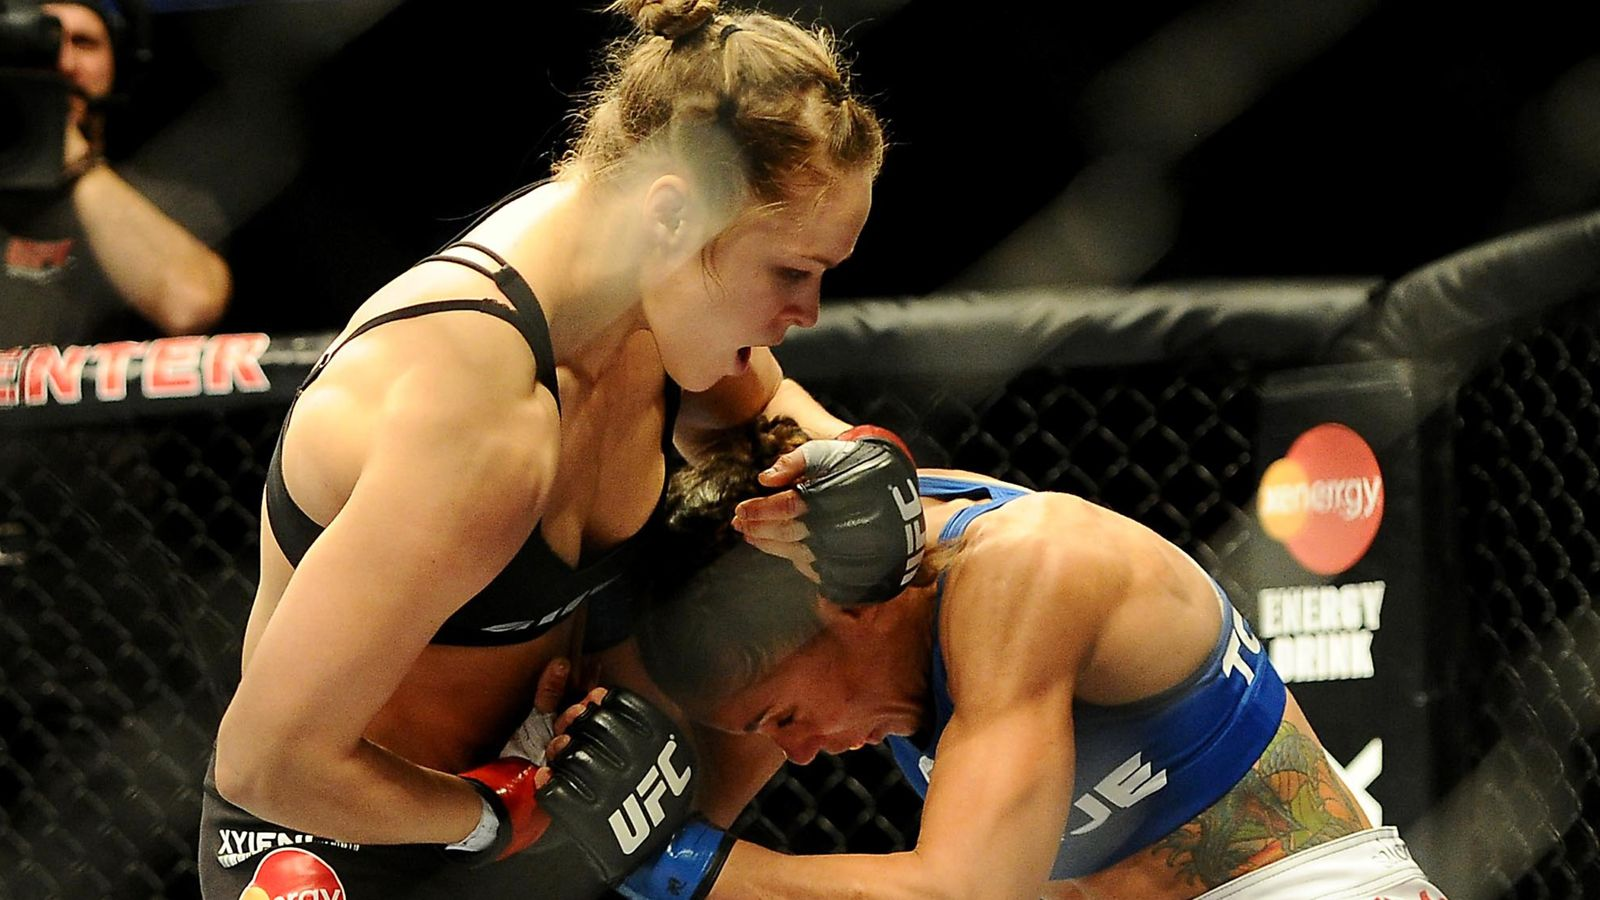 Ufc 157 Results Recap Ronda Rousey Vs Liz Carmouche Fight